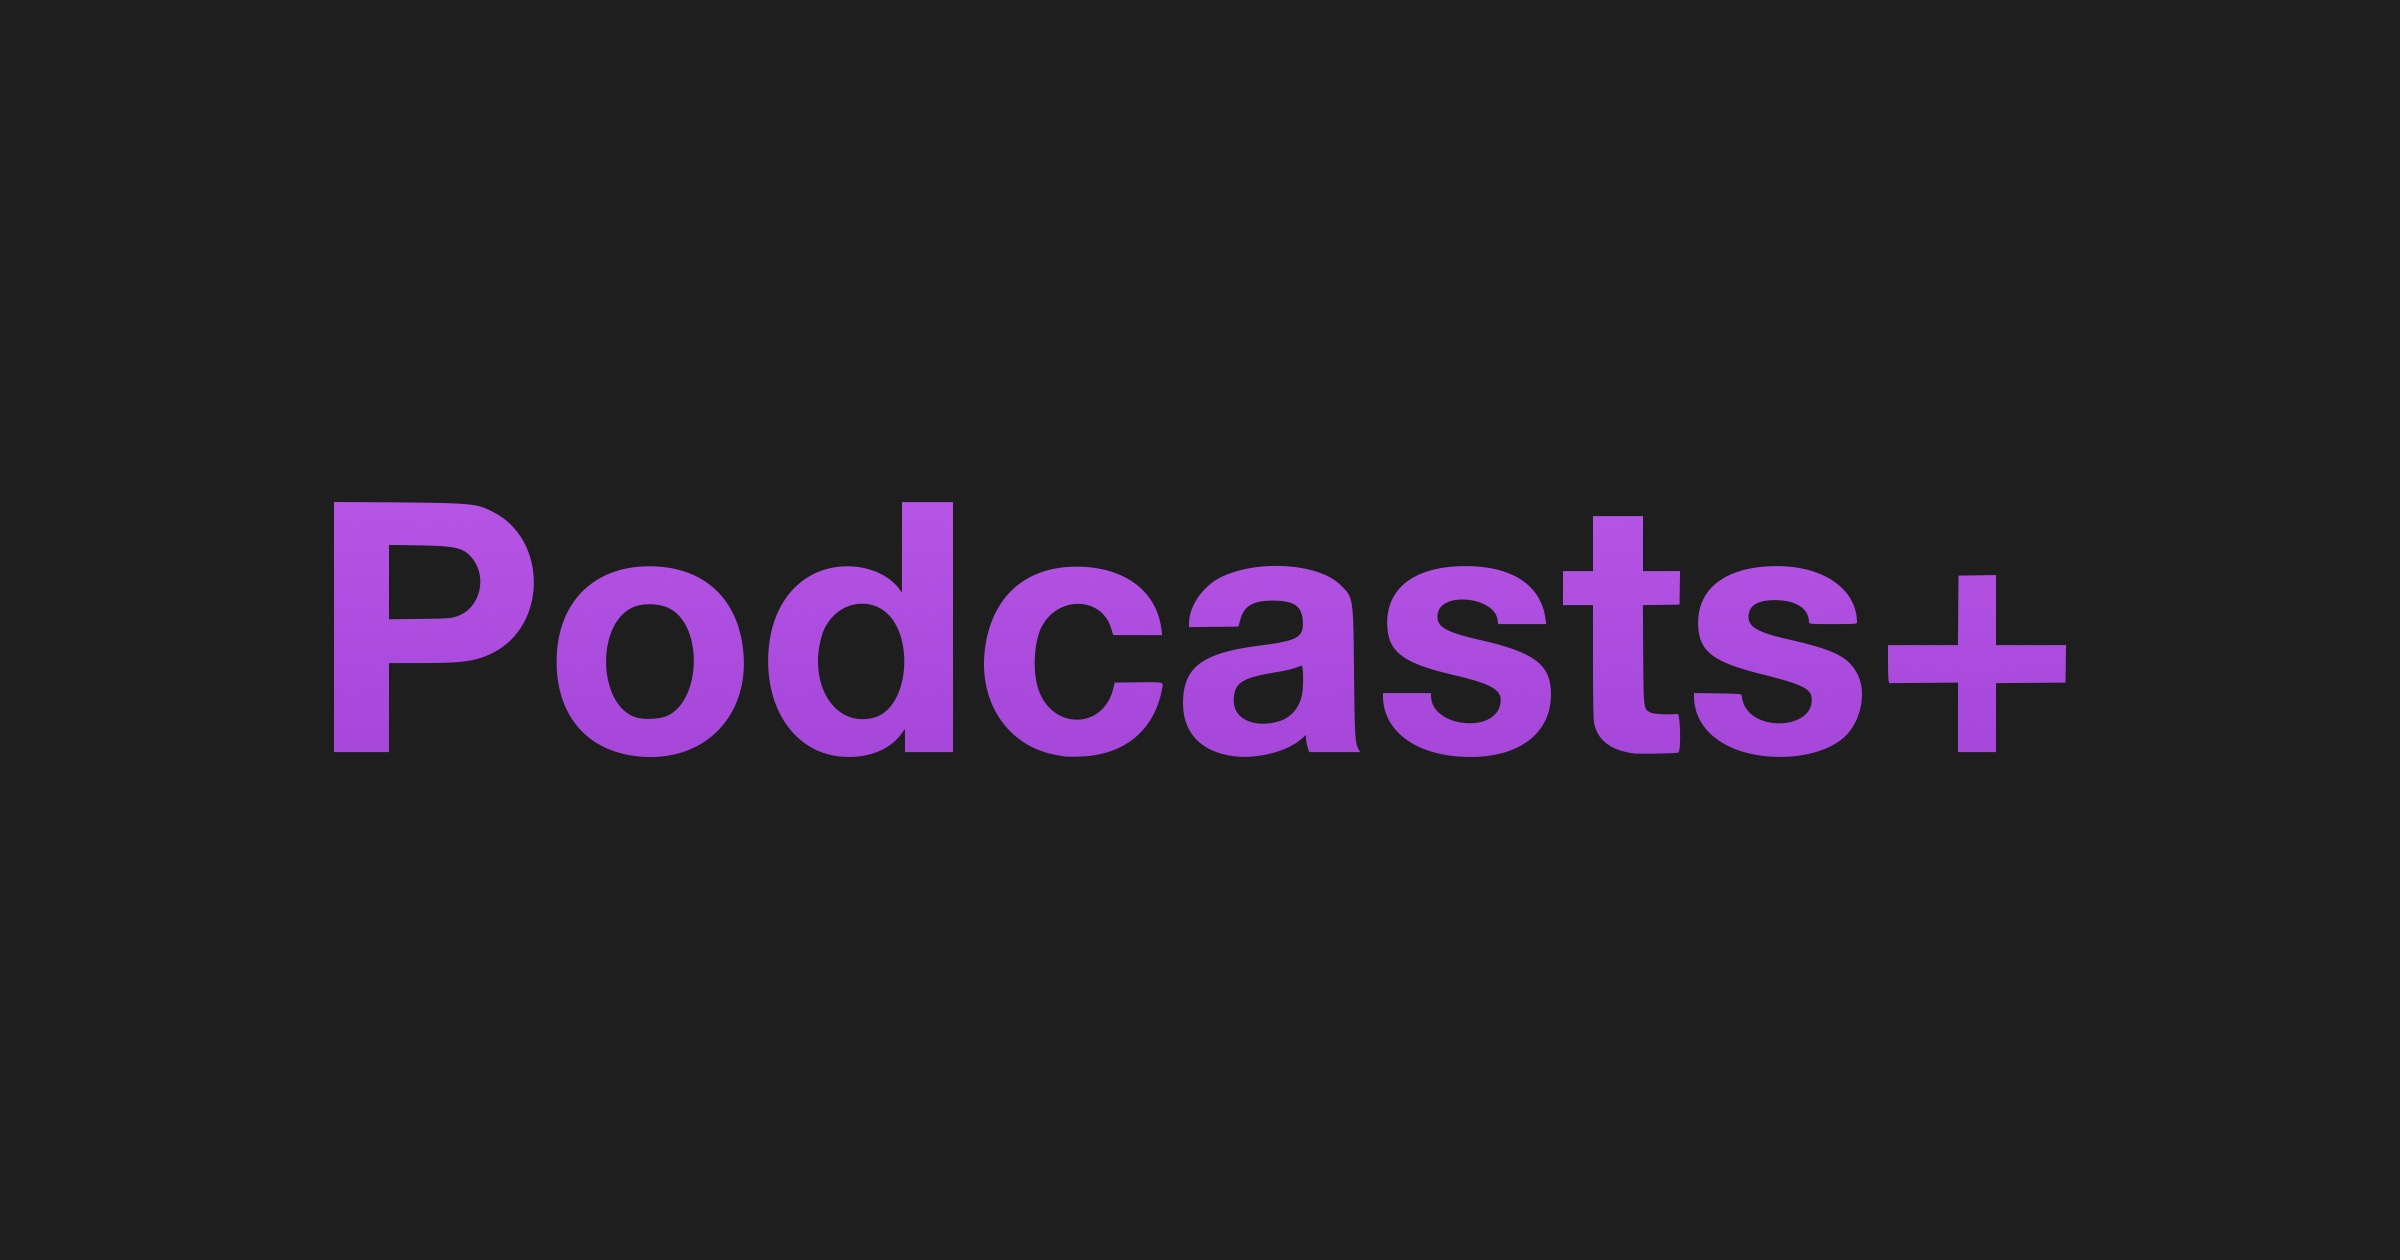 Podcasts+ concept